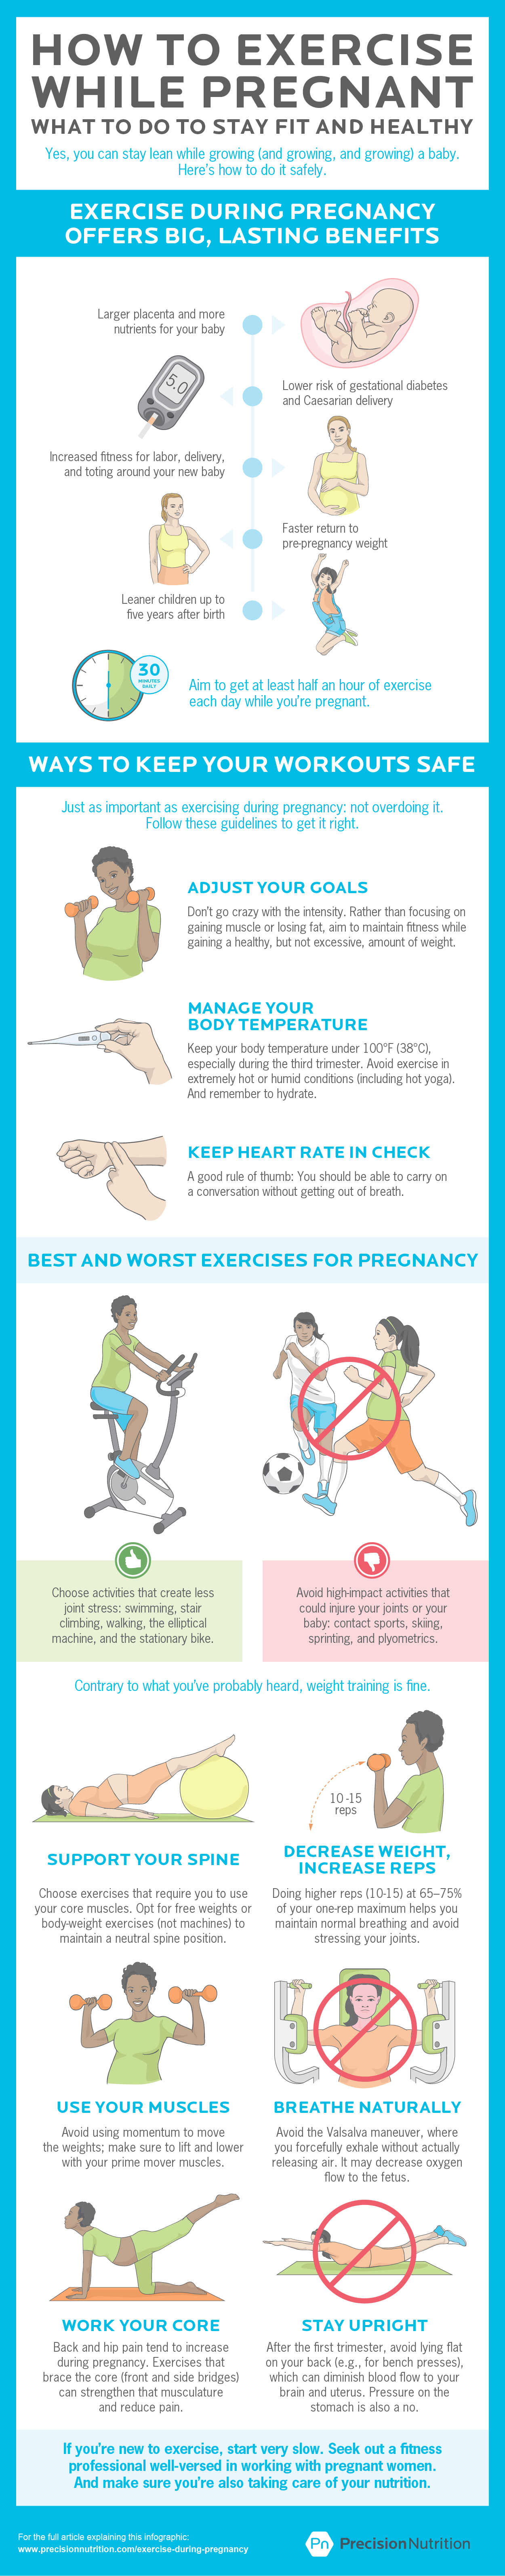 How to exercise while pregnant